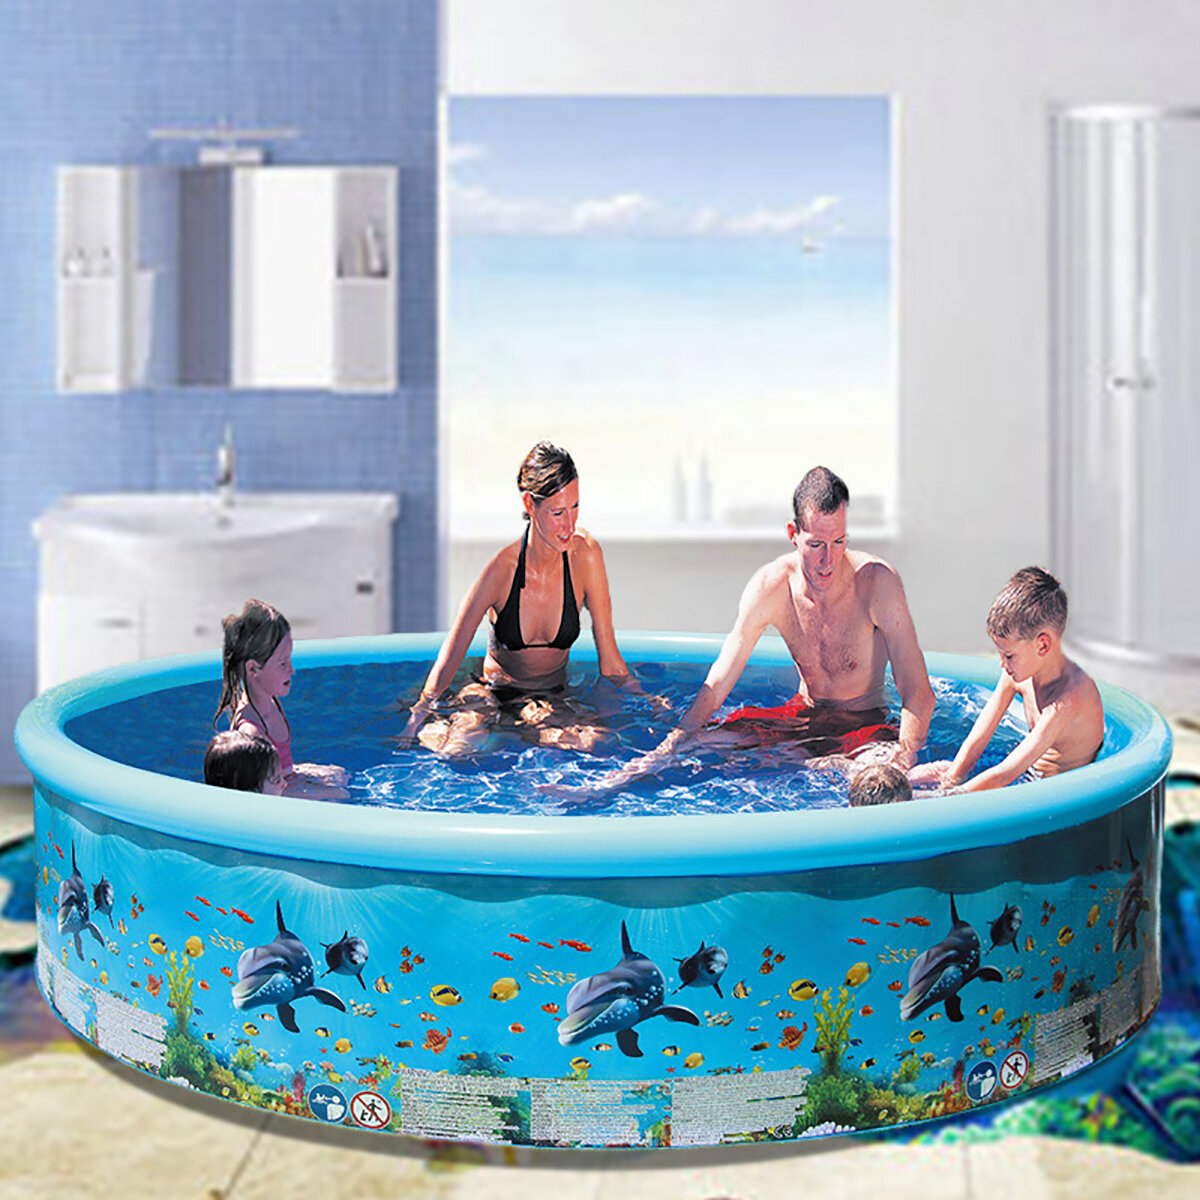 Swimming Pool Kids Adult Large Family Outdoor Swimming Pool Family Beach Summer Holiday Kids Pool